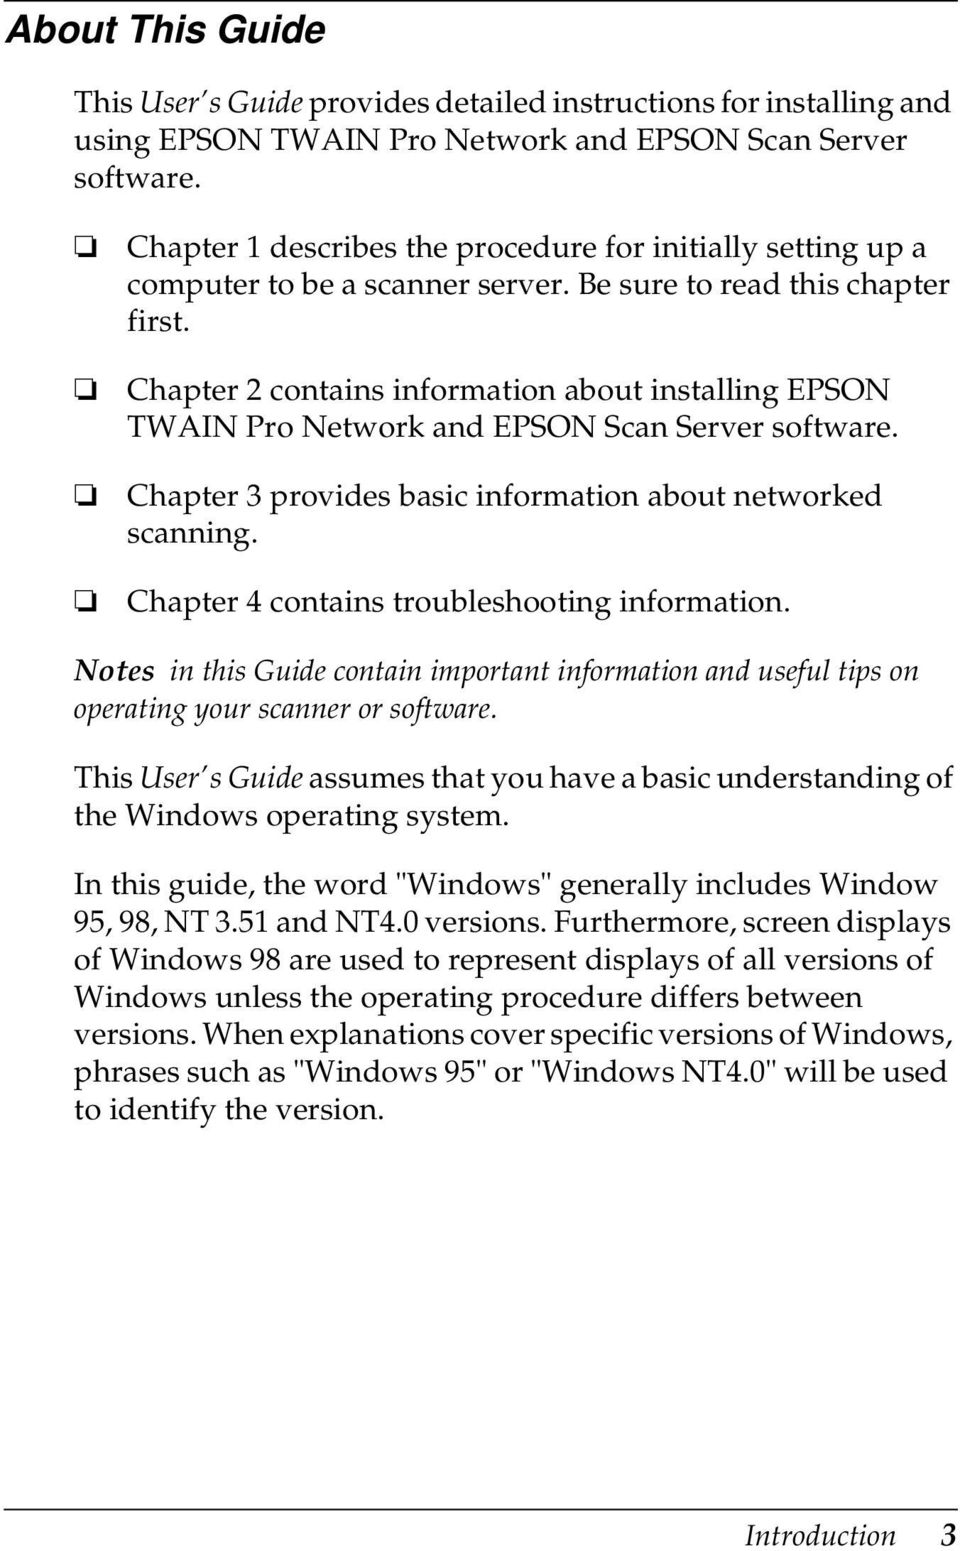 Chapter 2 contains information about installing EPSON TWAIN Pro Network and EPSON Scan Server software. Chapter 3 provides basic information about networked scanning.